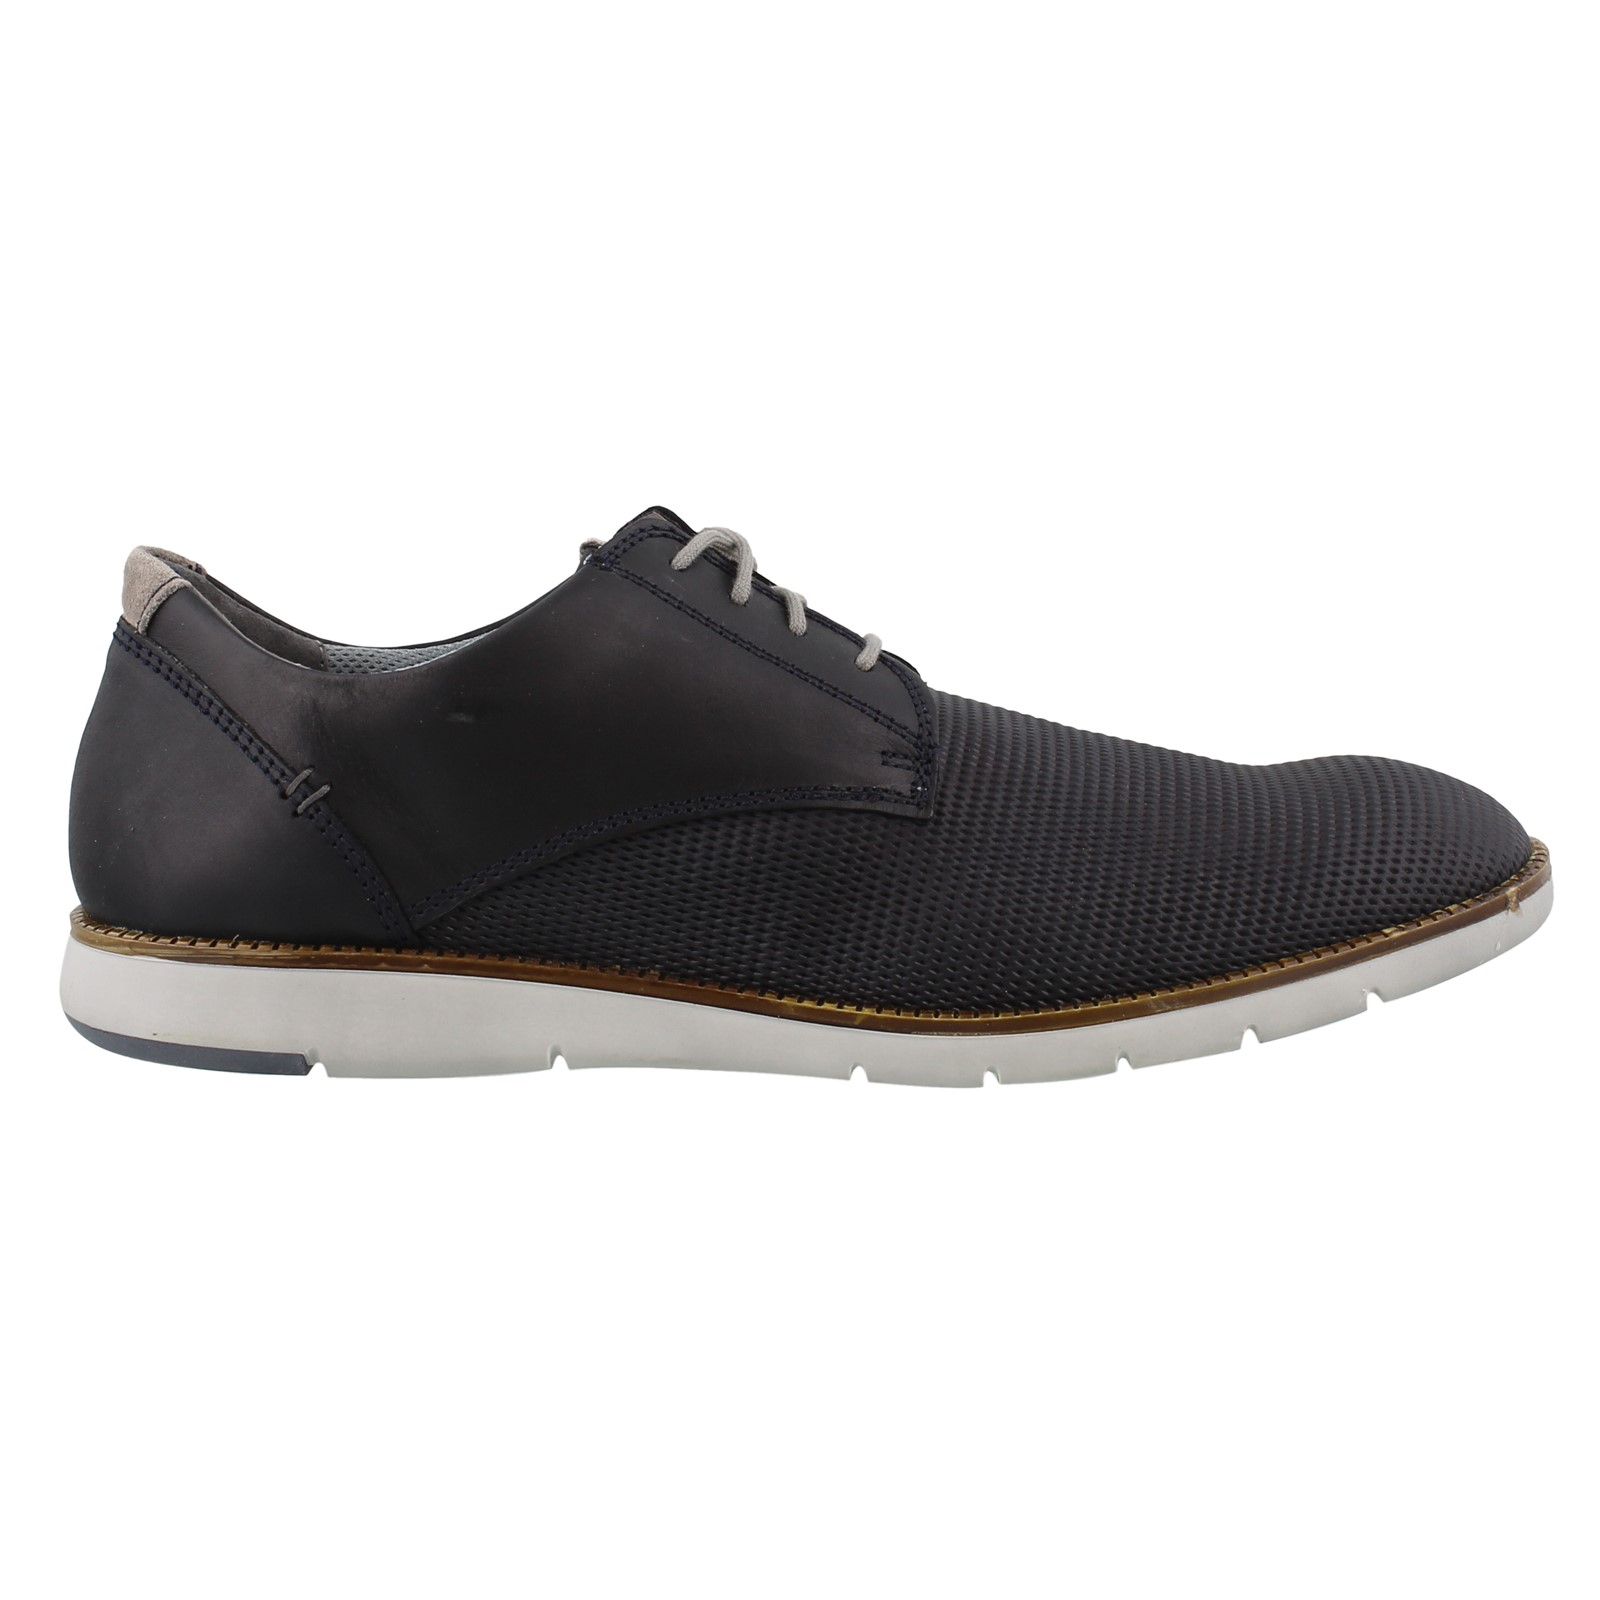 Men's Josef Seibel, Tyler 09 Lace up Oxfords